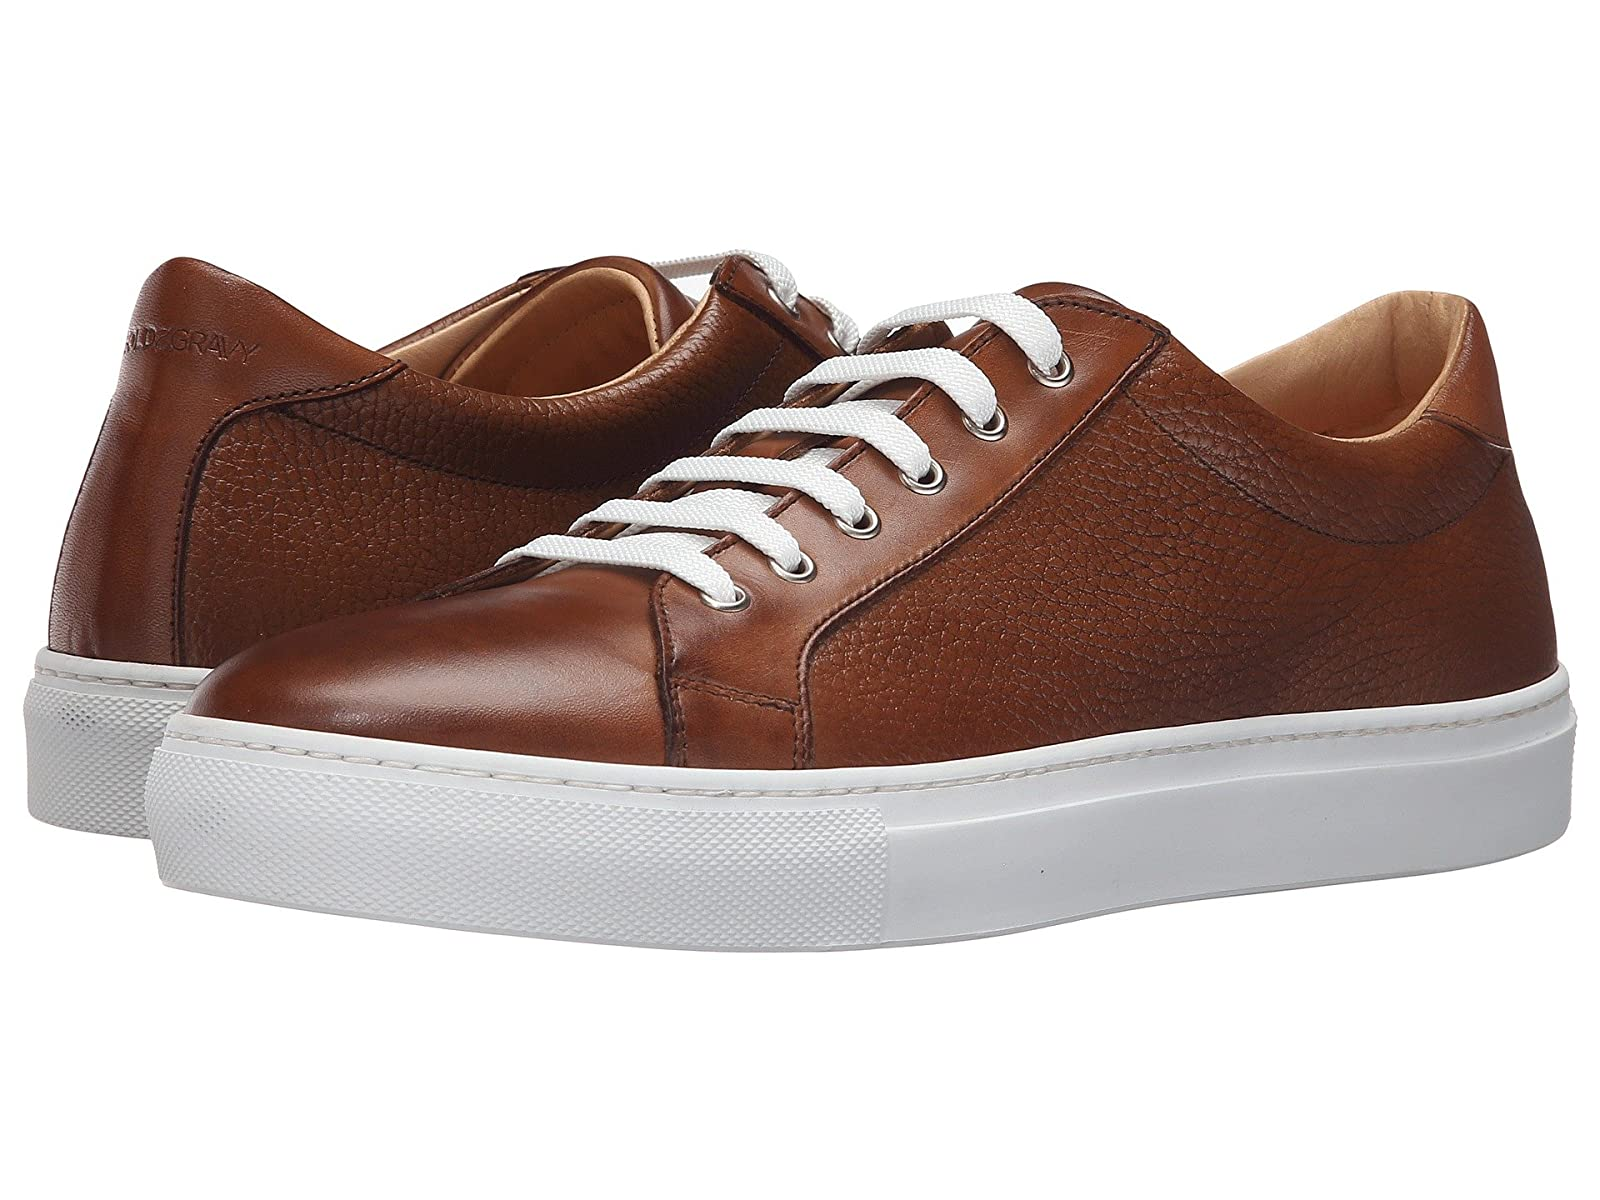 Gold & Gravy StreetAtmospheric grades have affordable shoes